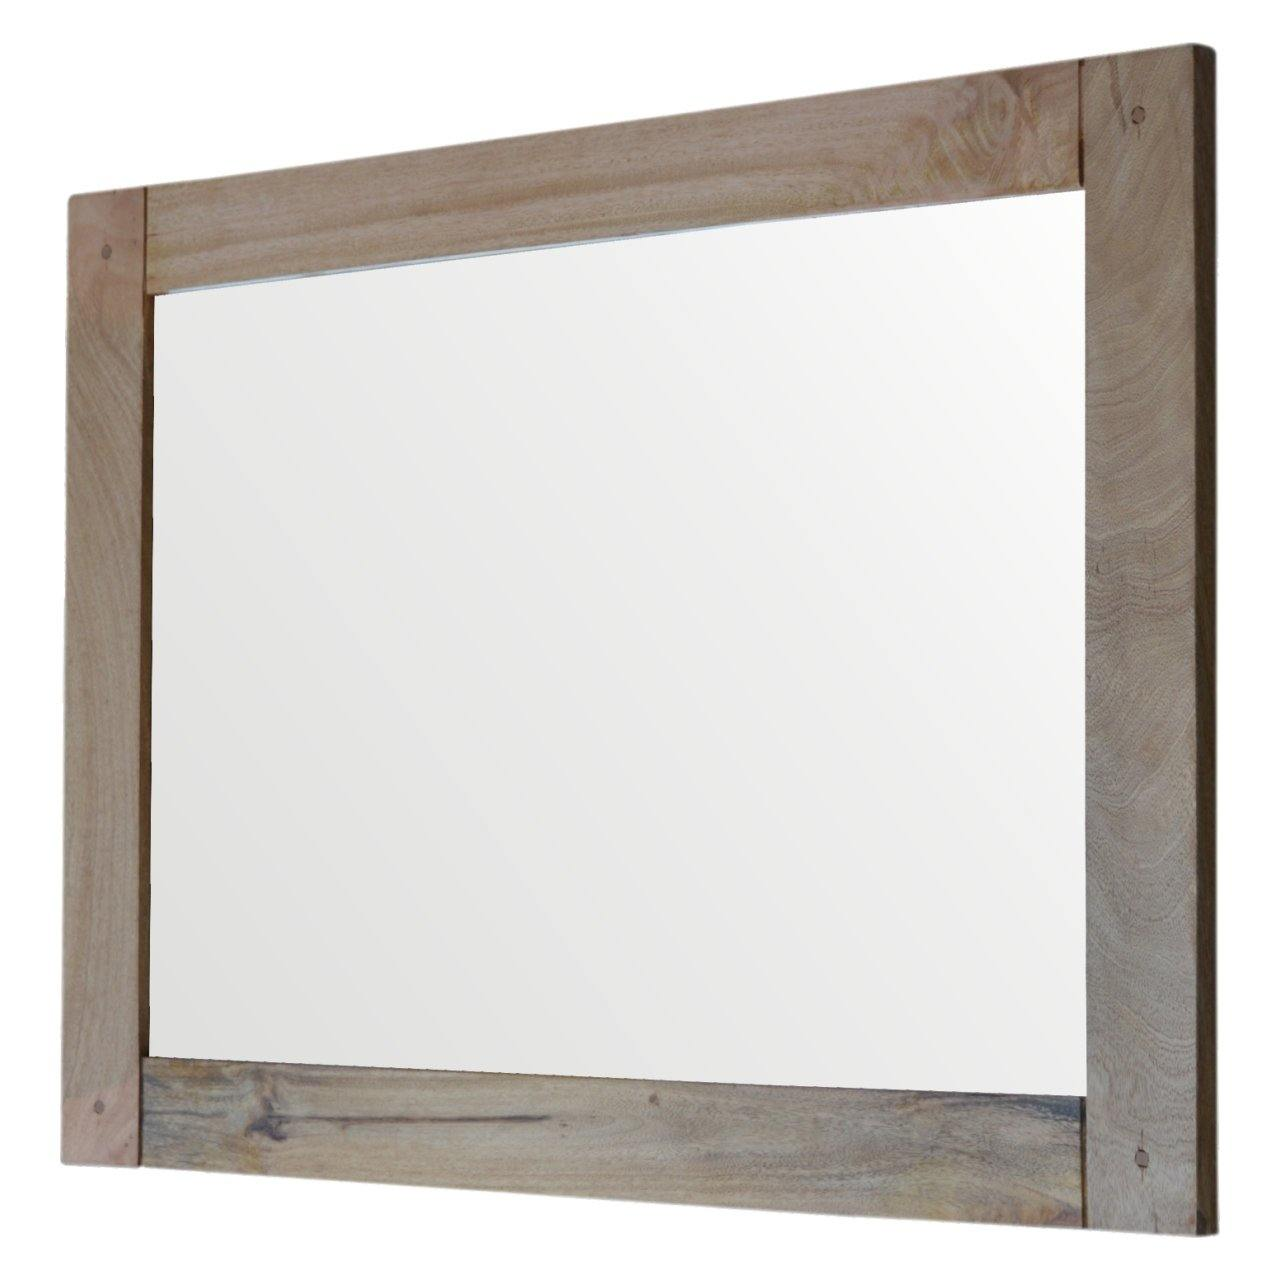 Granary Royale Wooden Mirror Frame - DadiTude